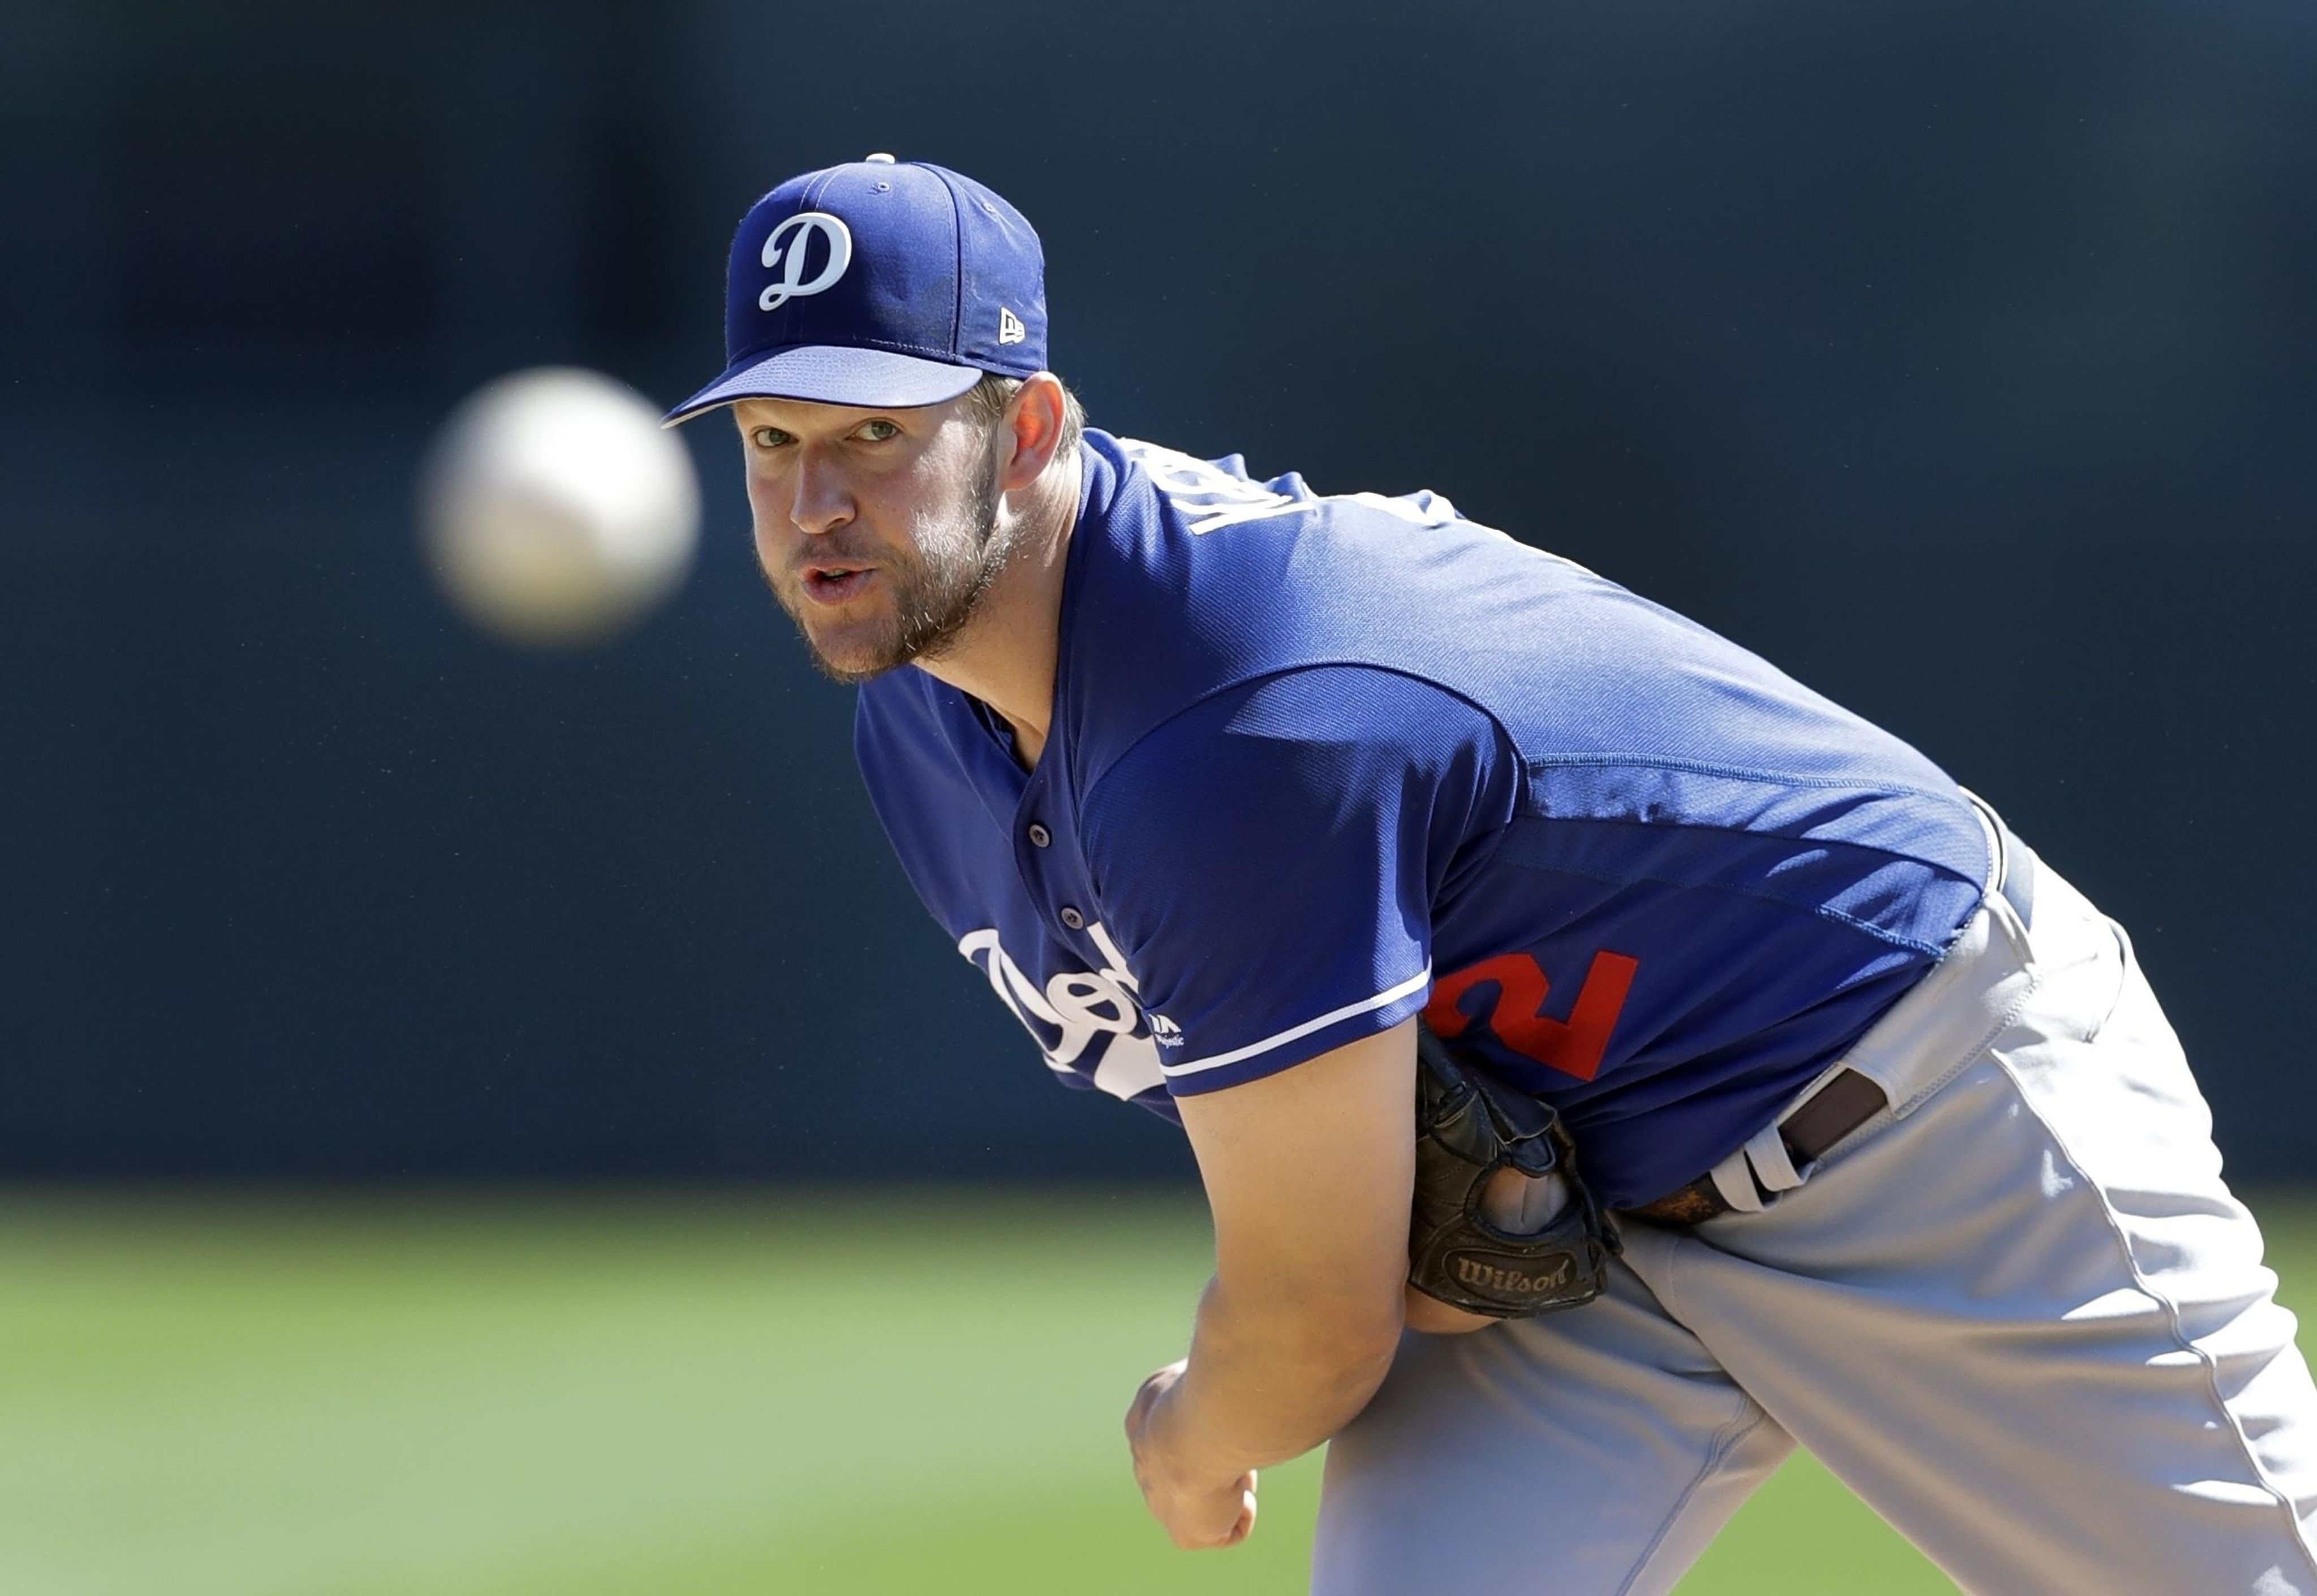 Dodgers_preview_baseball_95340_s4096x2822